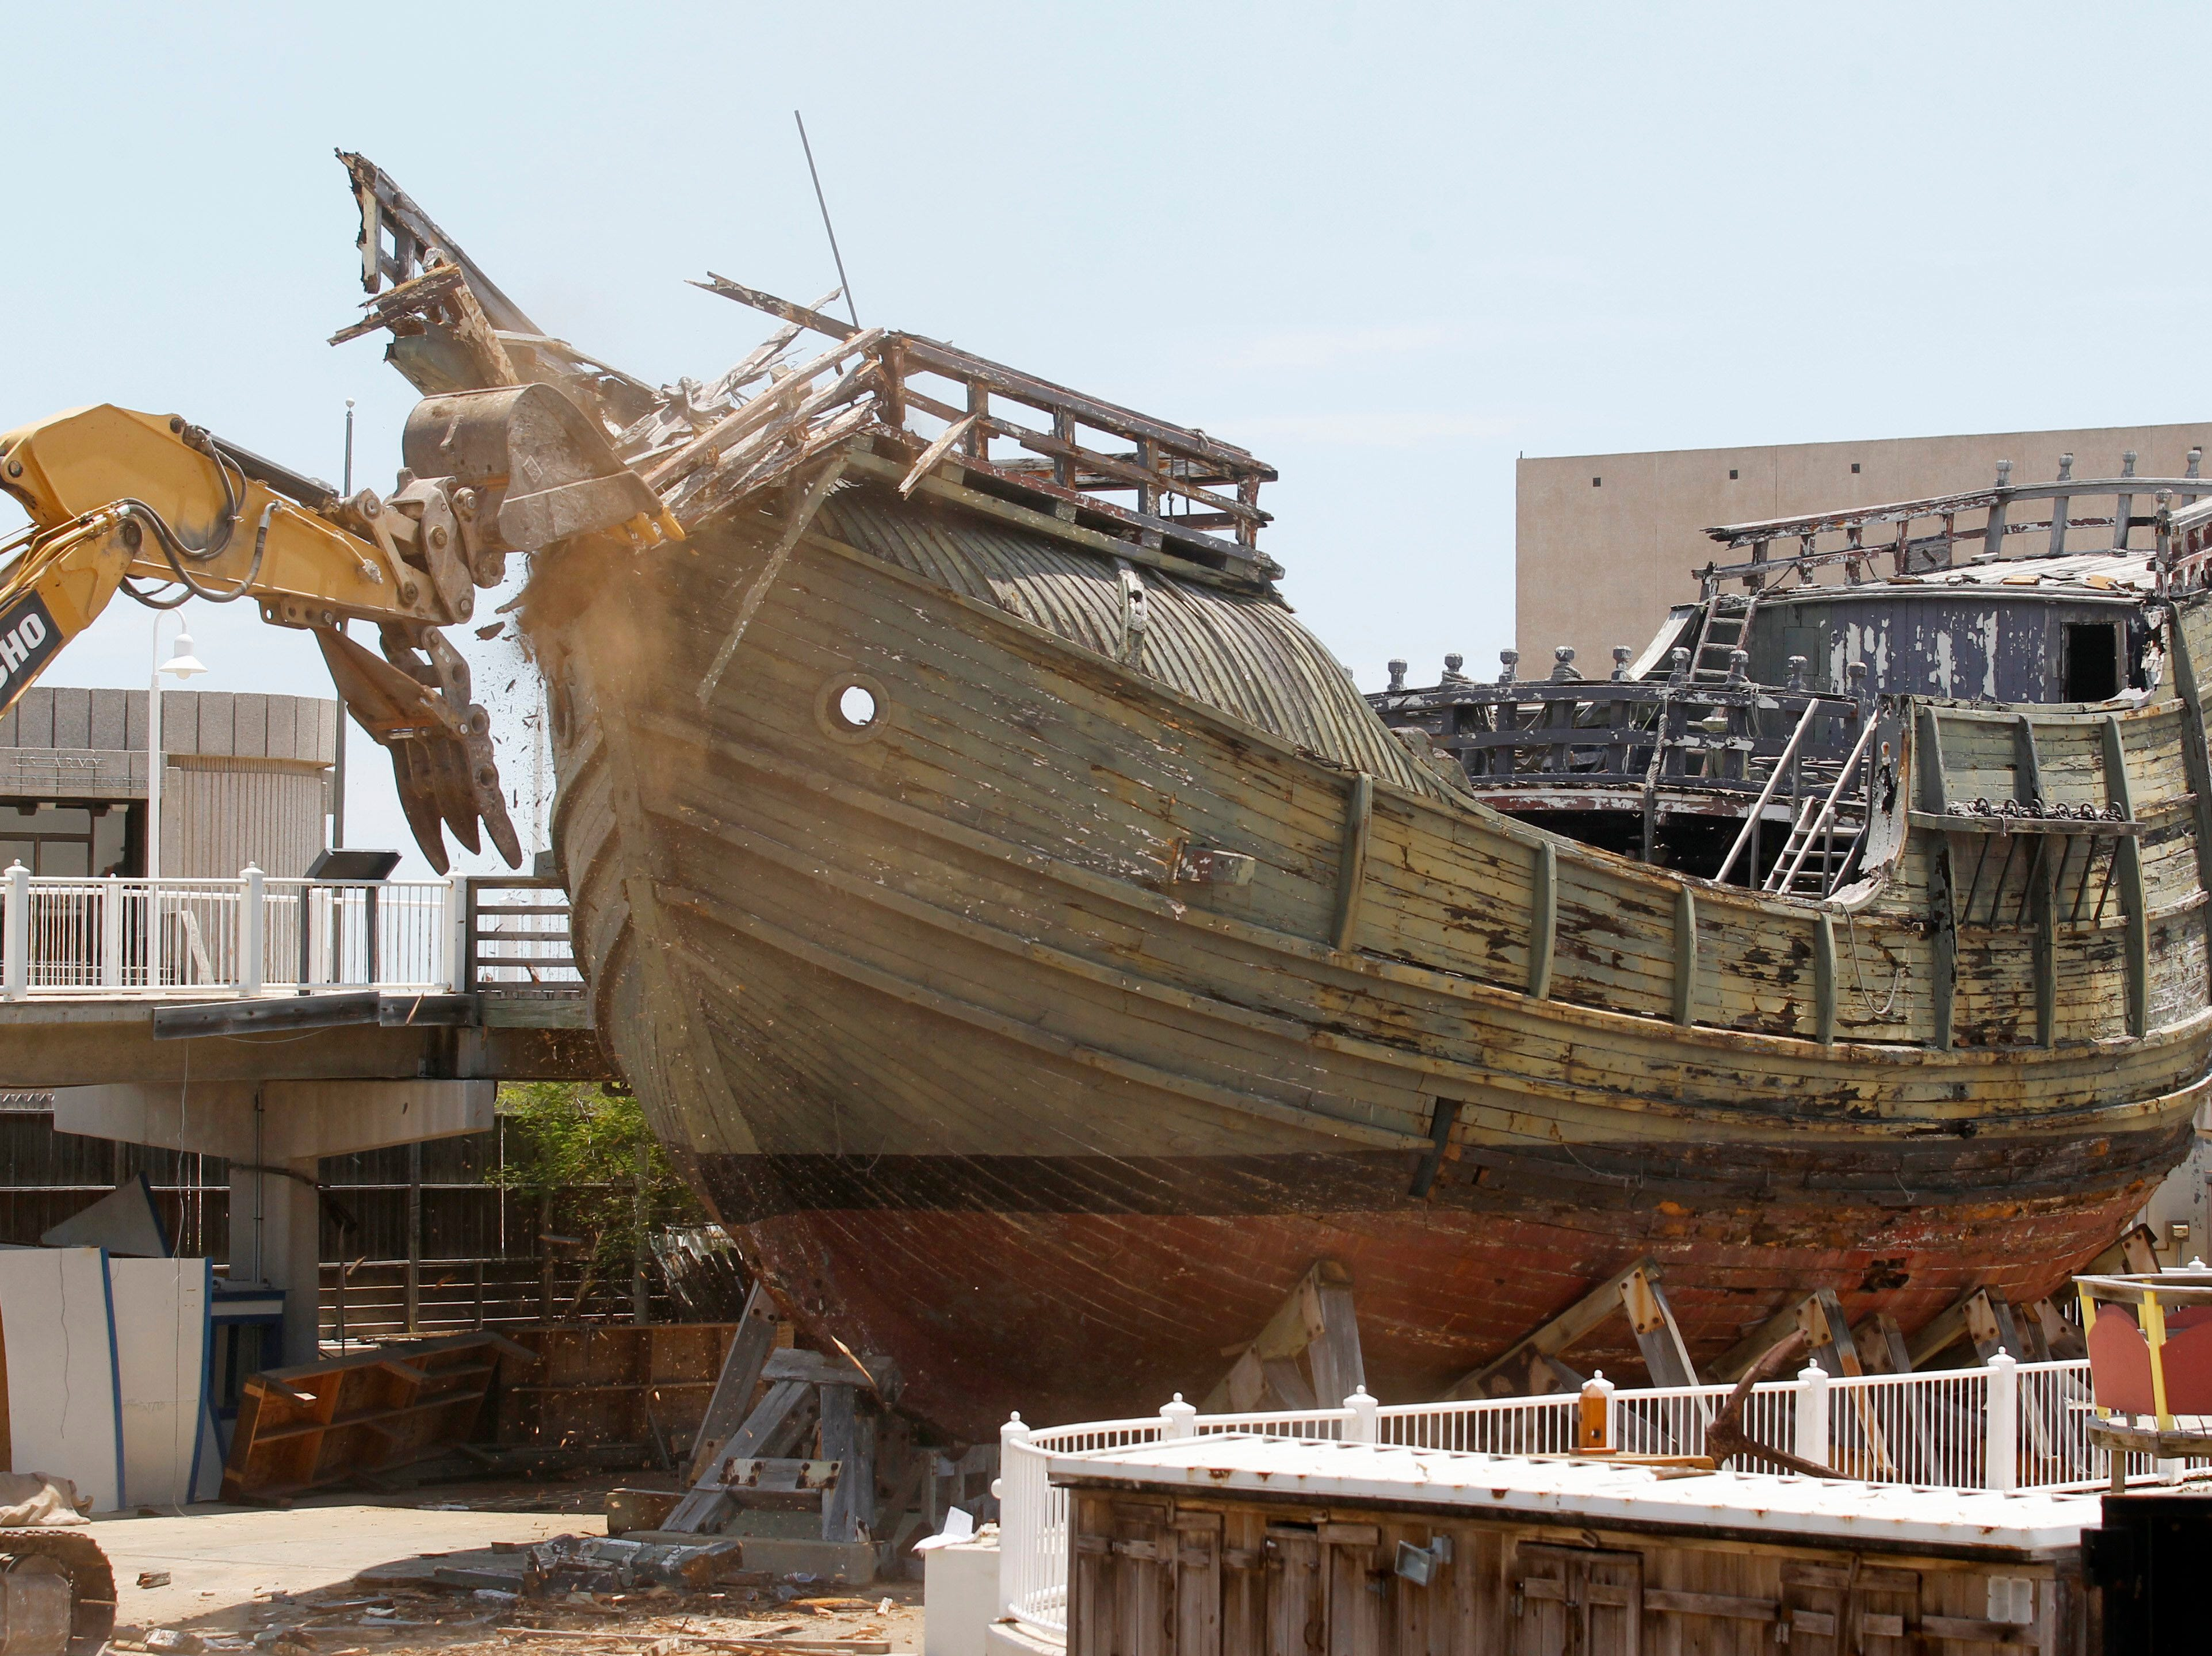 Crews rip into the front of the Santa Maria Tuesday, Aug. 12, 2013 as they take down the second of the two Columbus replica ships at the Corpus Christi Museum of Science and History.